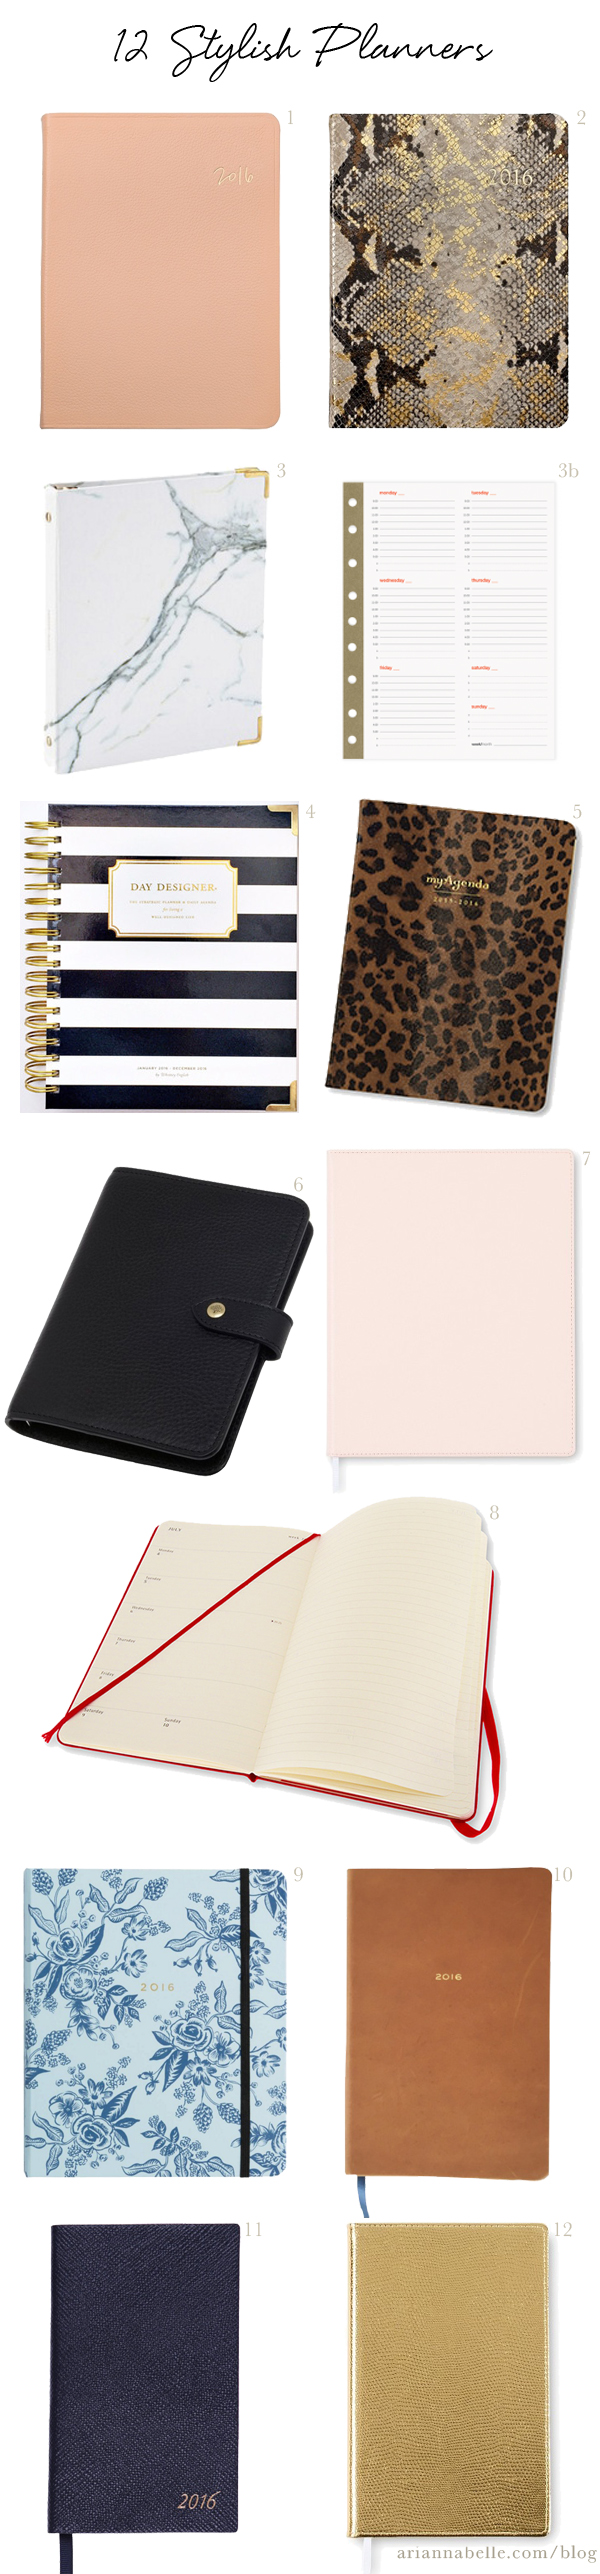 12 Stylish Planners via Arianna Belle Blog http://blog.ariannabelle.com/2015/12/roundup-stylish-2016-planners-diaries-and-agendas.html